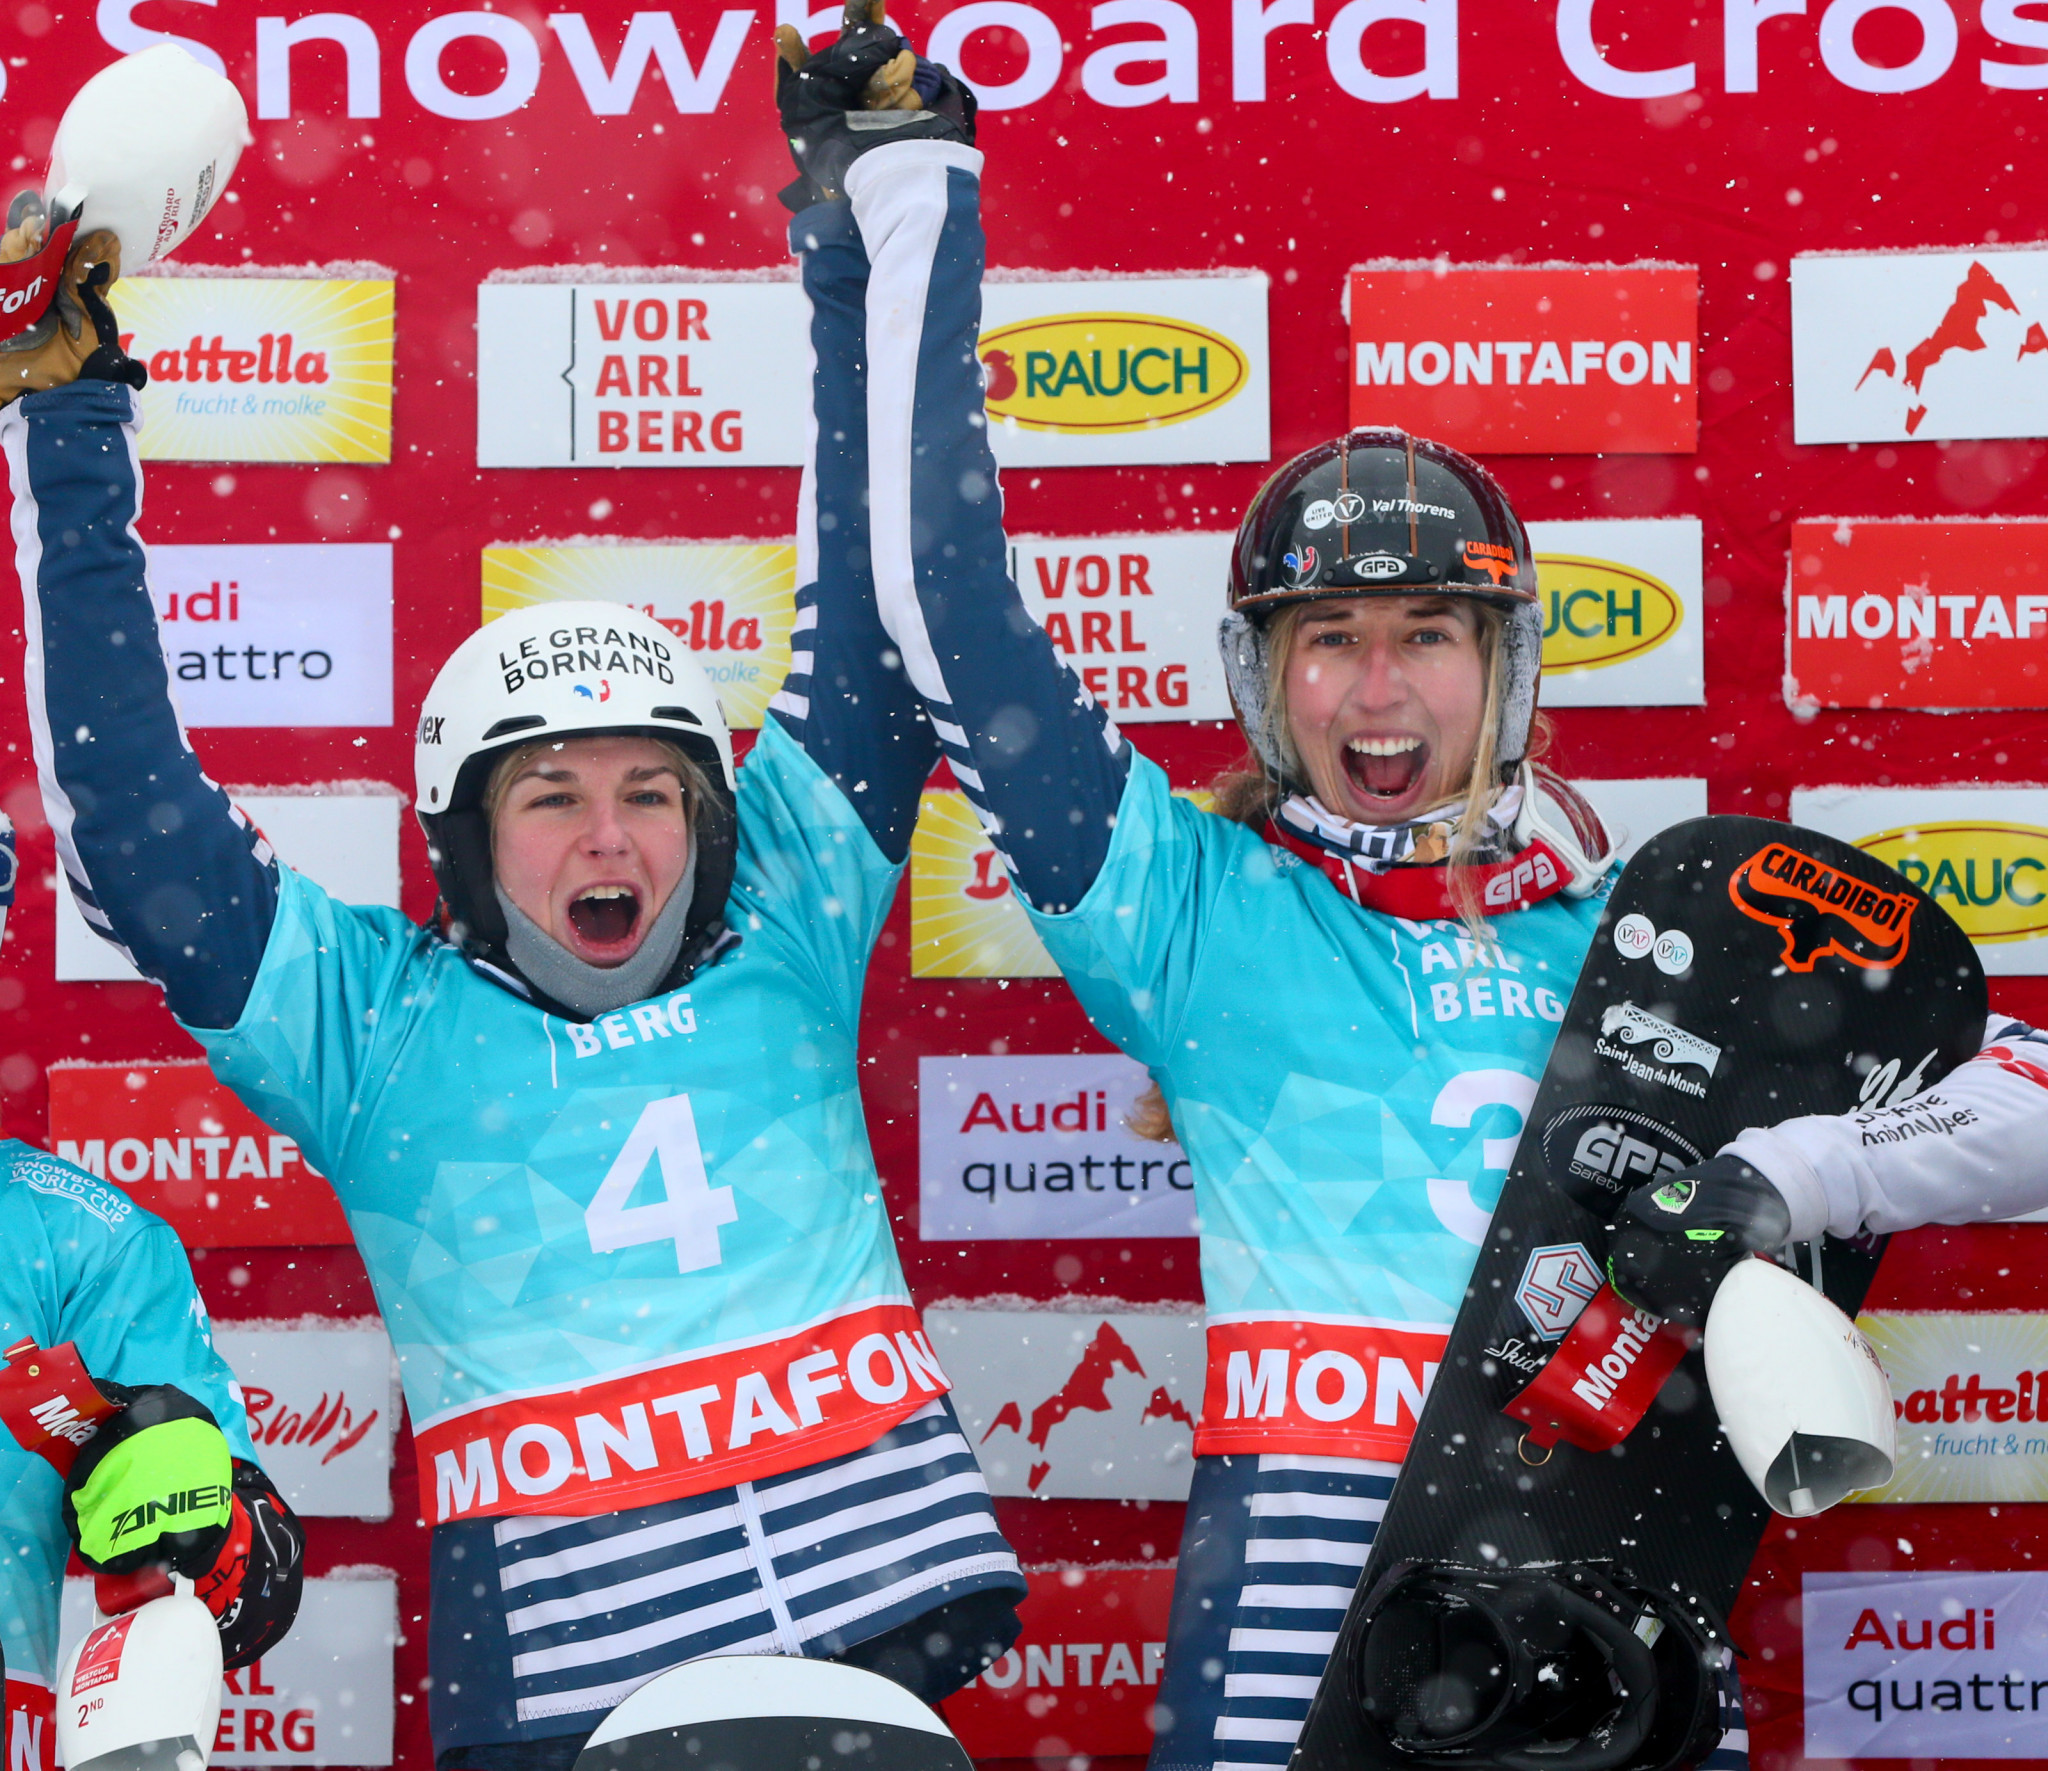 French world champions win team event at Snowboard Cross World Cup